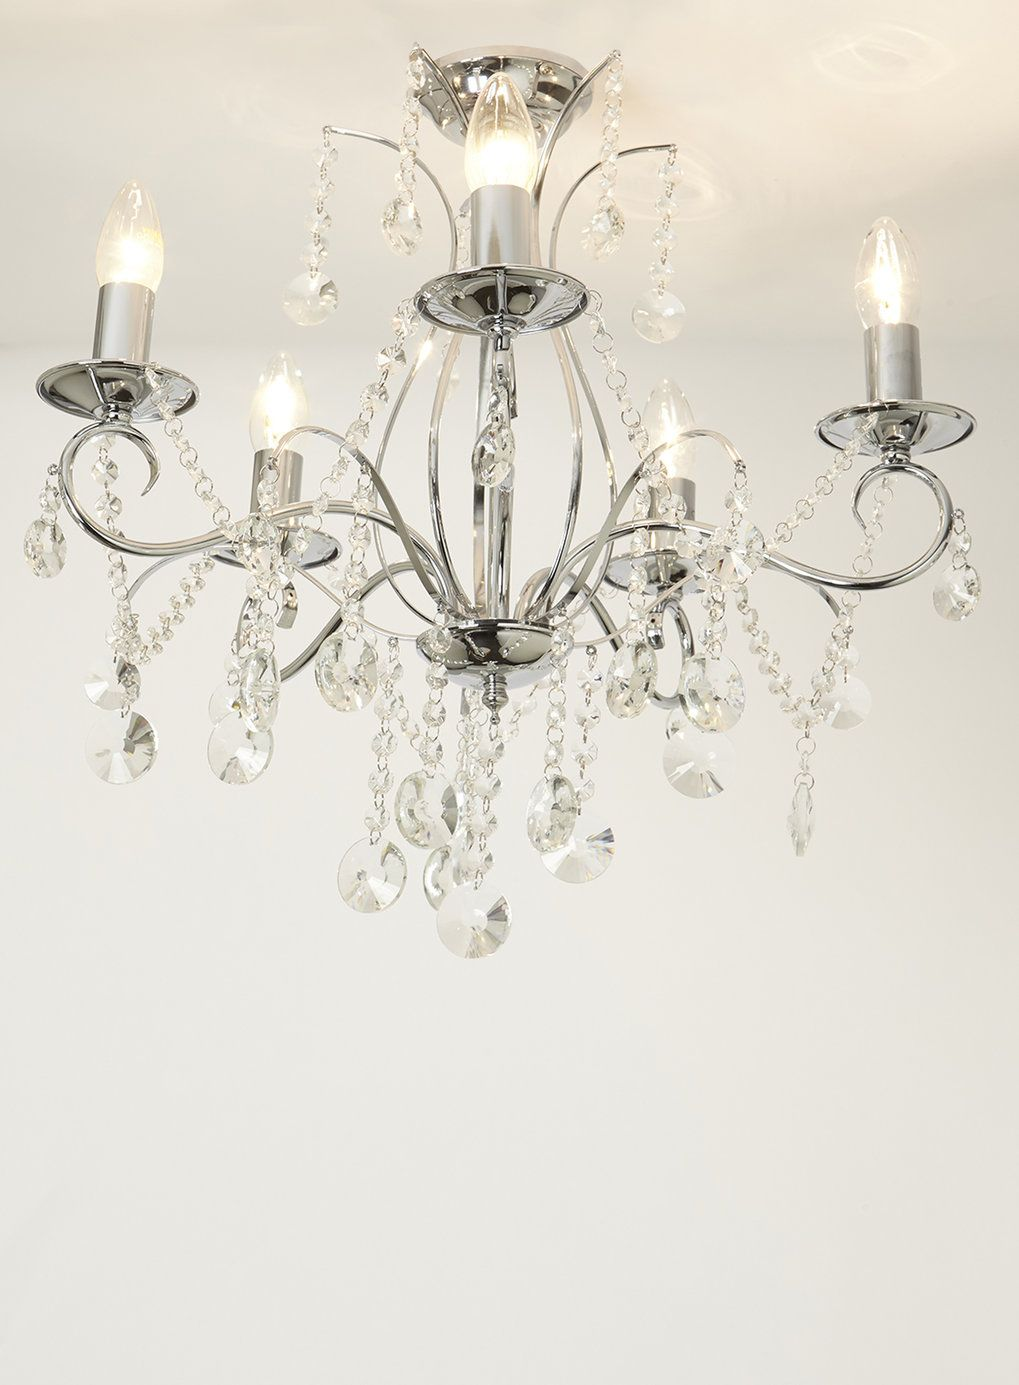 Perfect Lighting Bhs Home Gallery - Home Decorating Inspiration ...